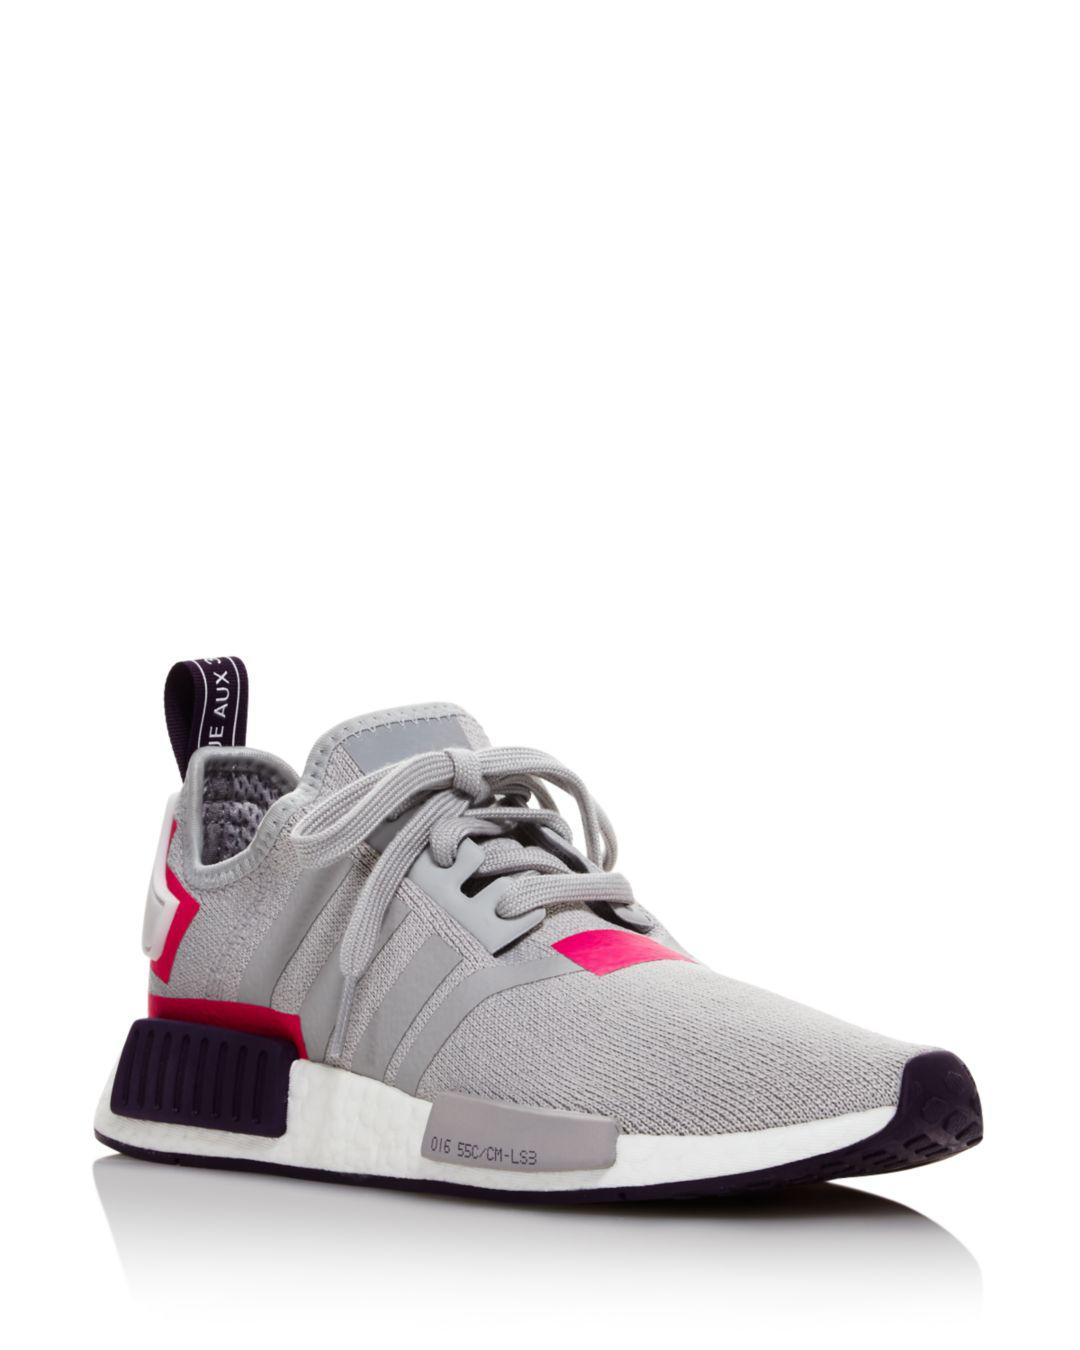 562d21ef4e09 adidas Women s Nmd R1 Knit Lace Up Sneakers - Lyst